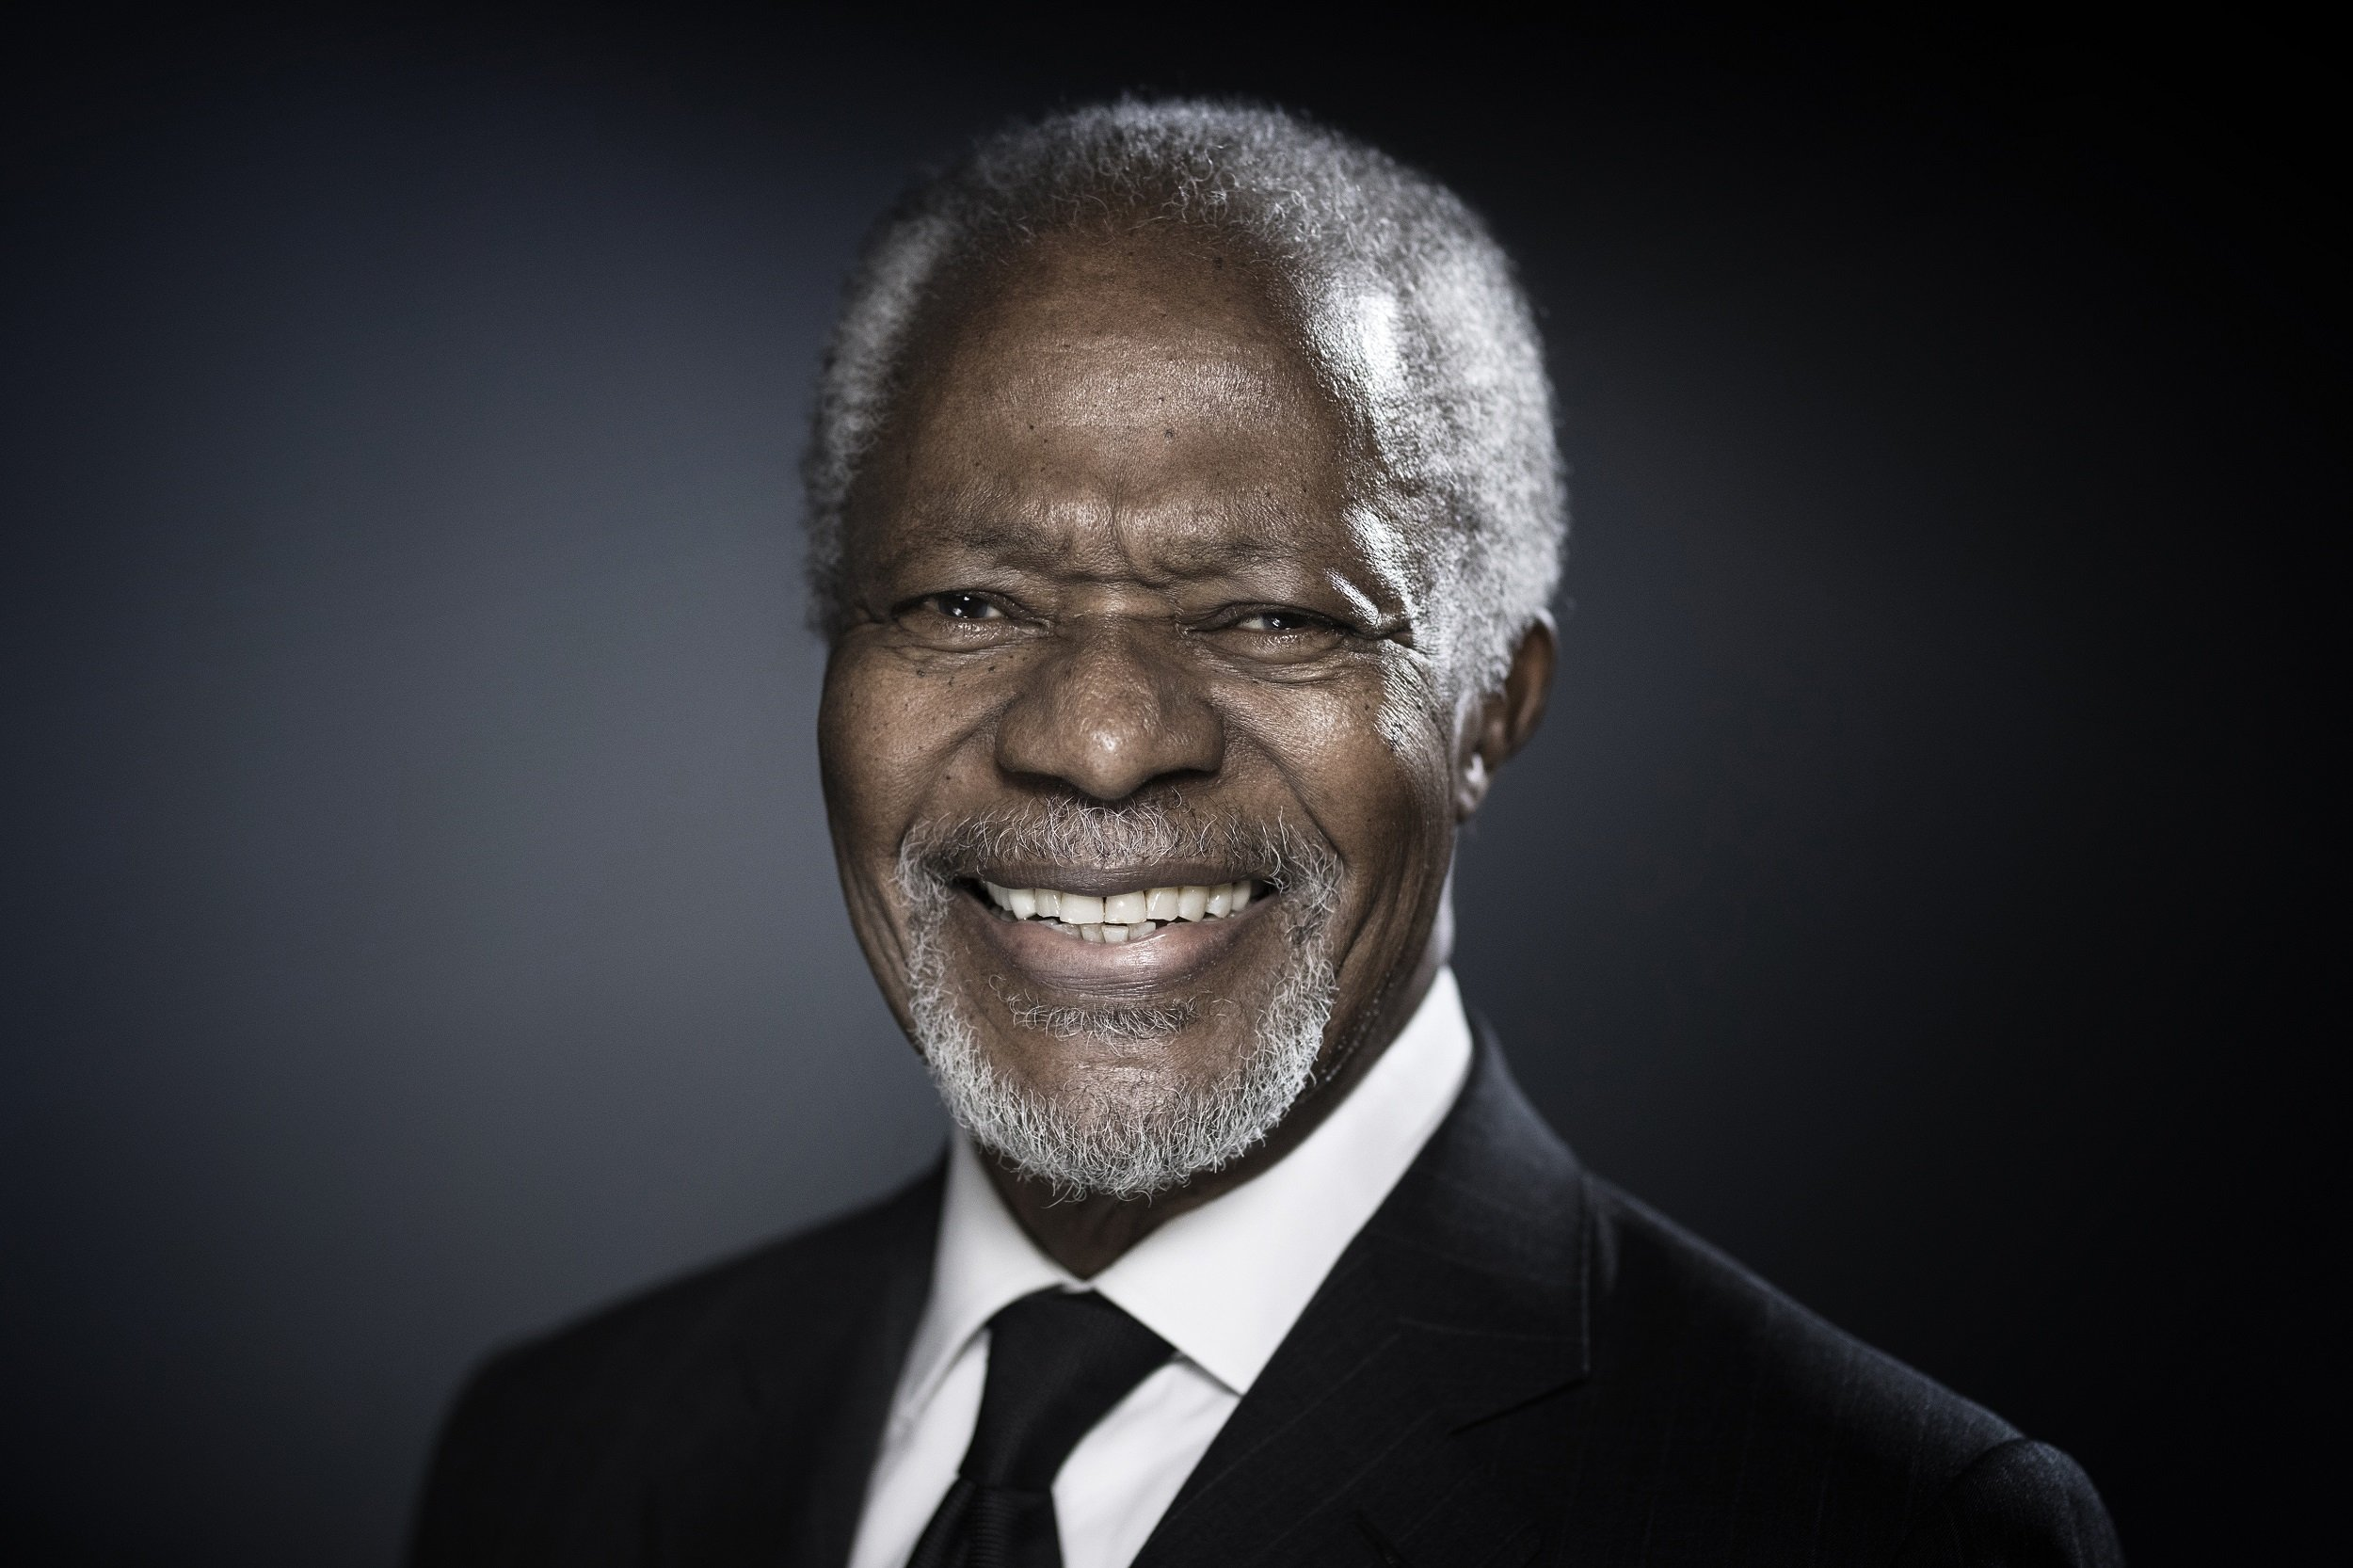 Legalize Marijuana In Honor Of Kofi Annan